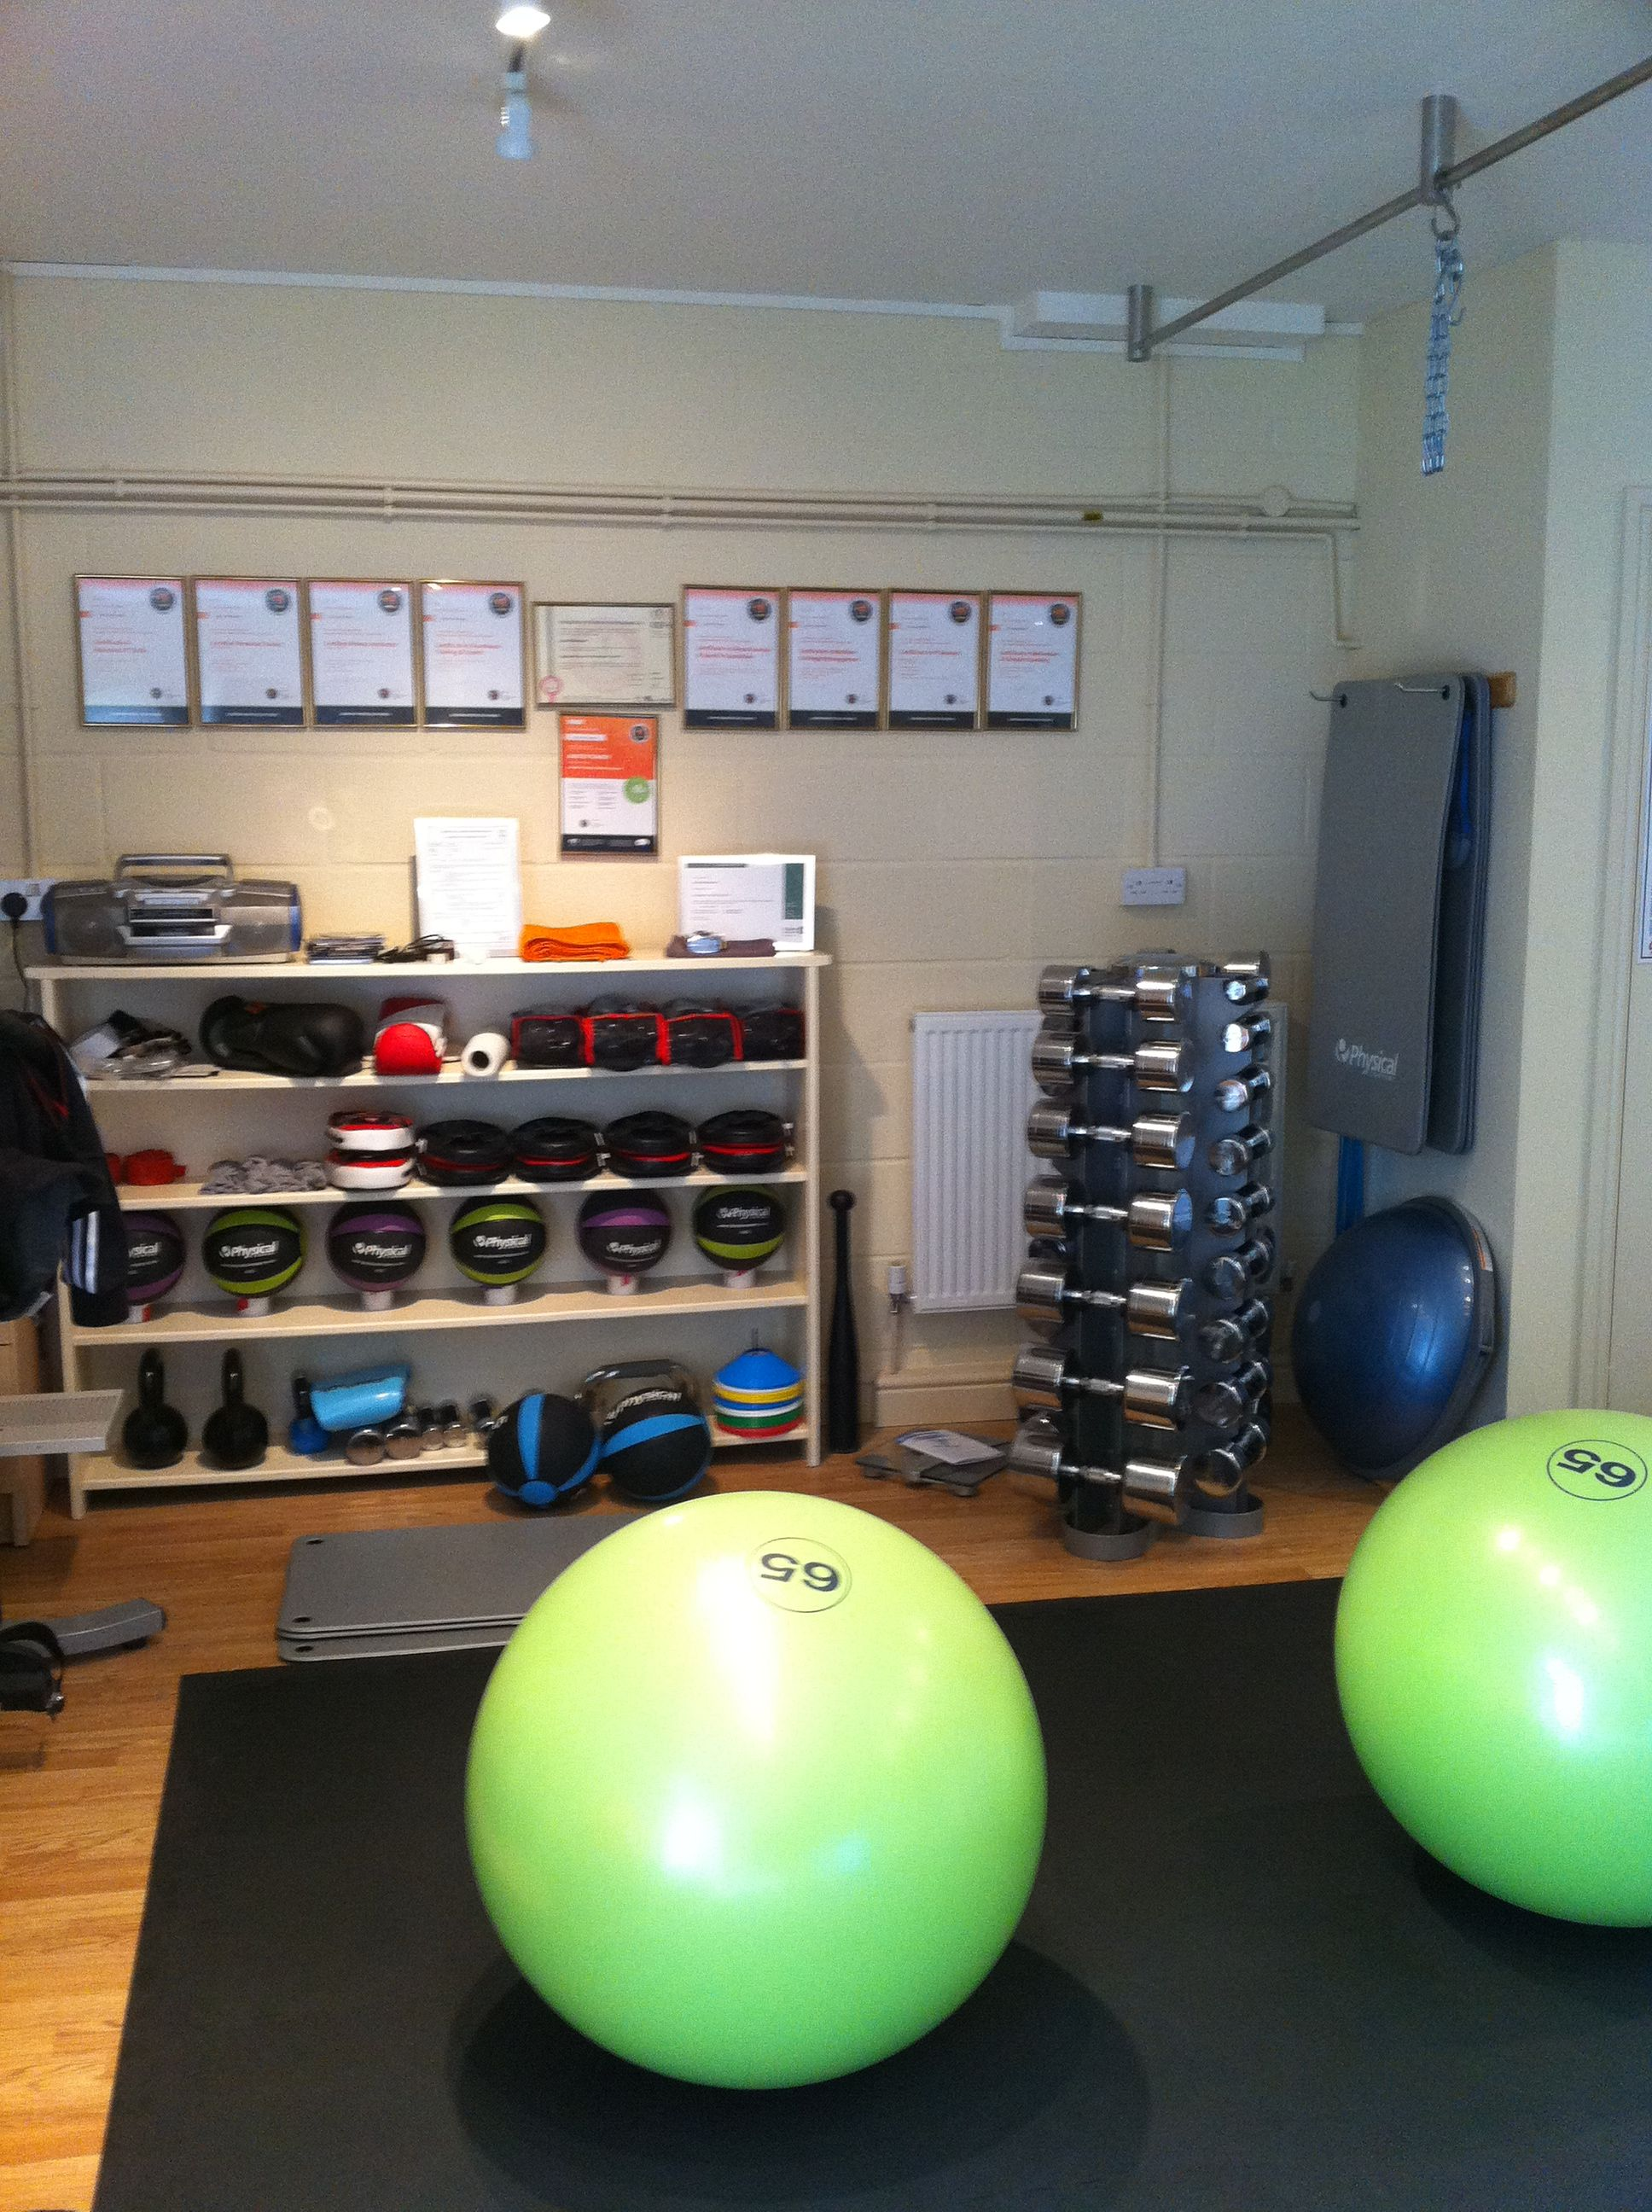 Is that a spinning dumbbell rack in the right corner? nice space